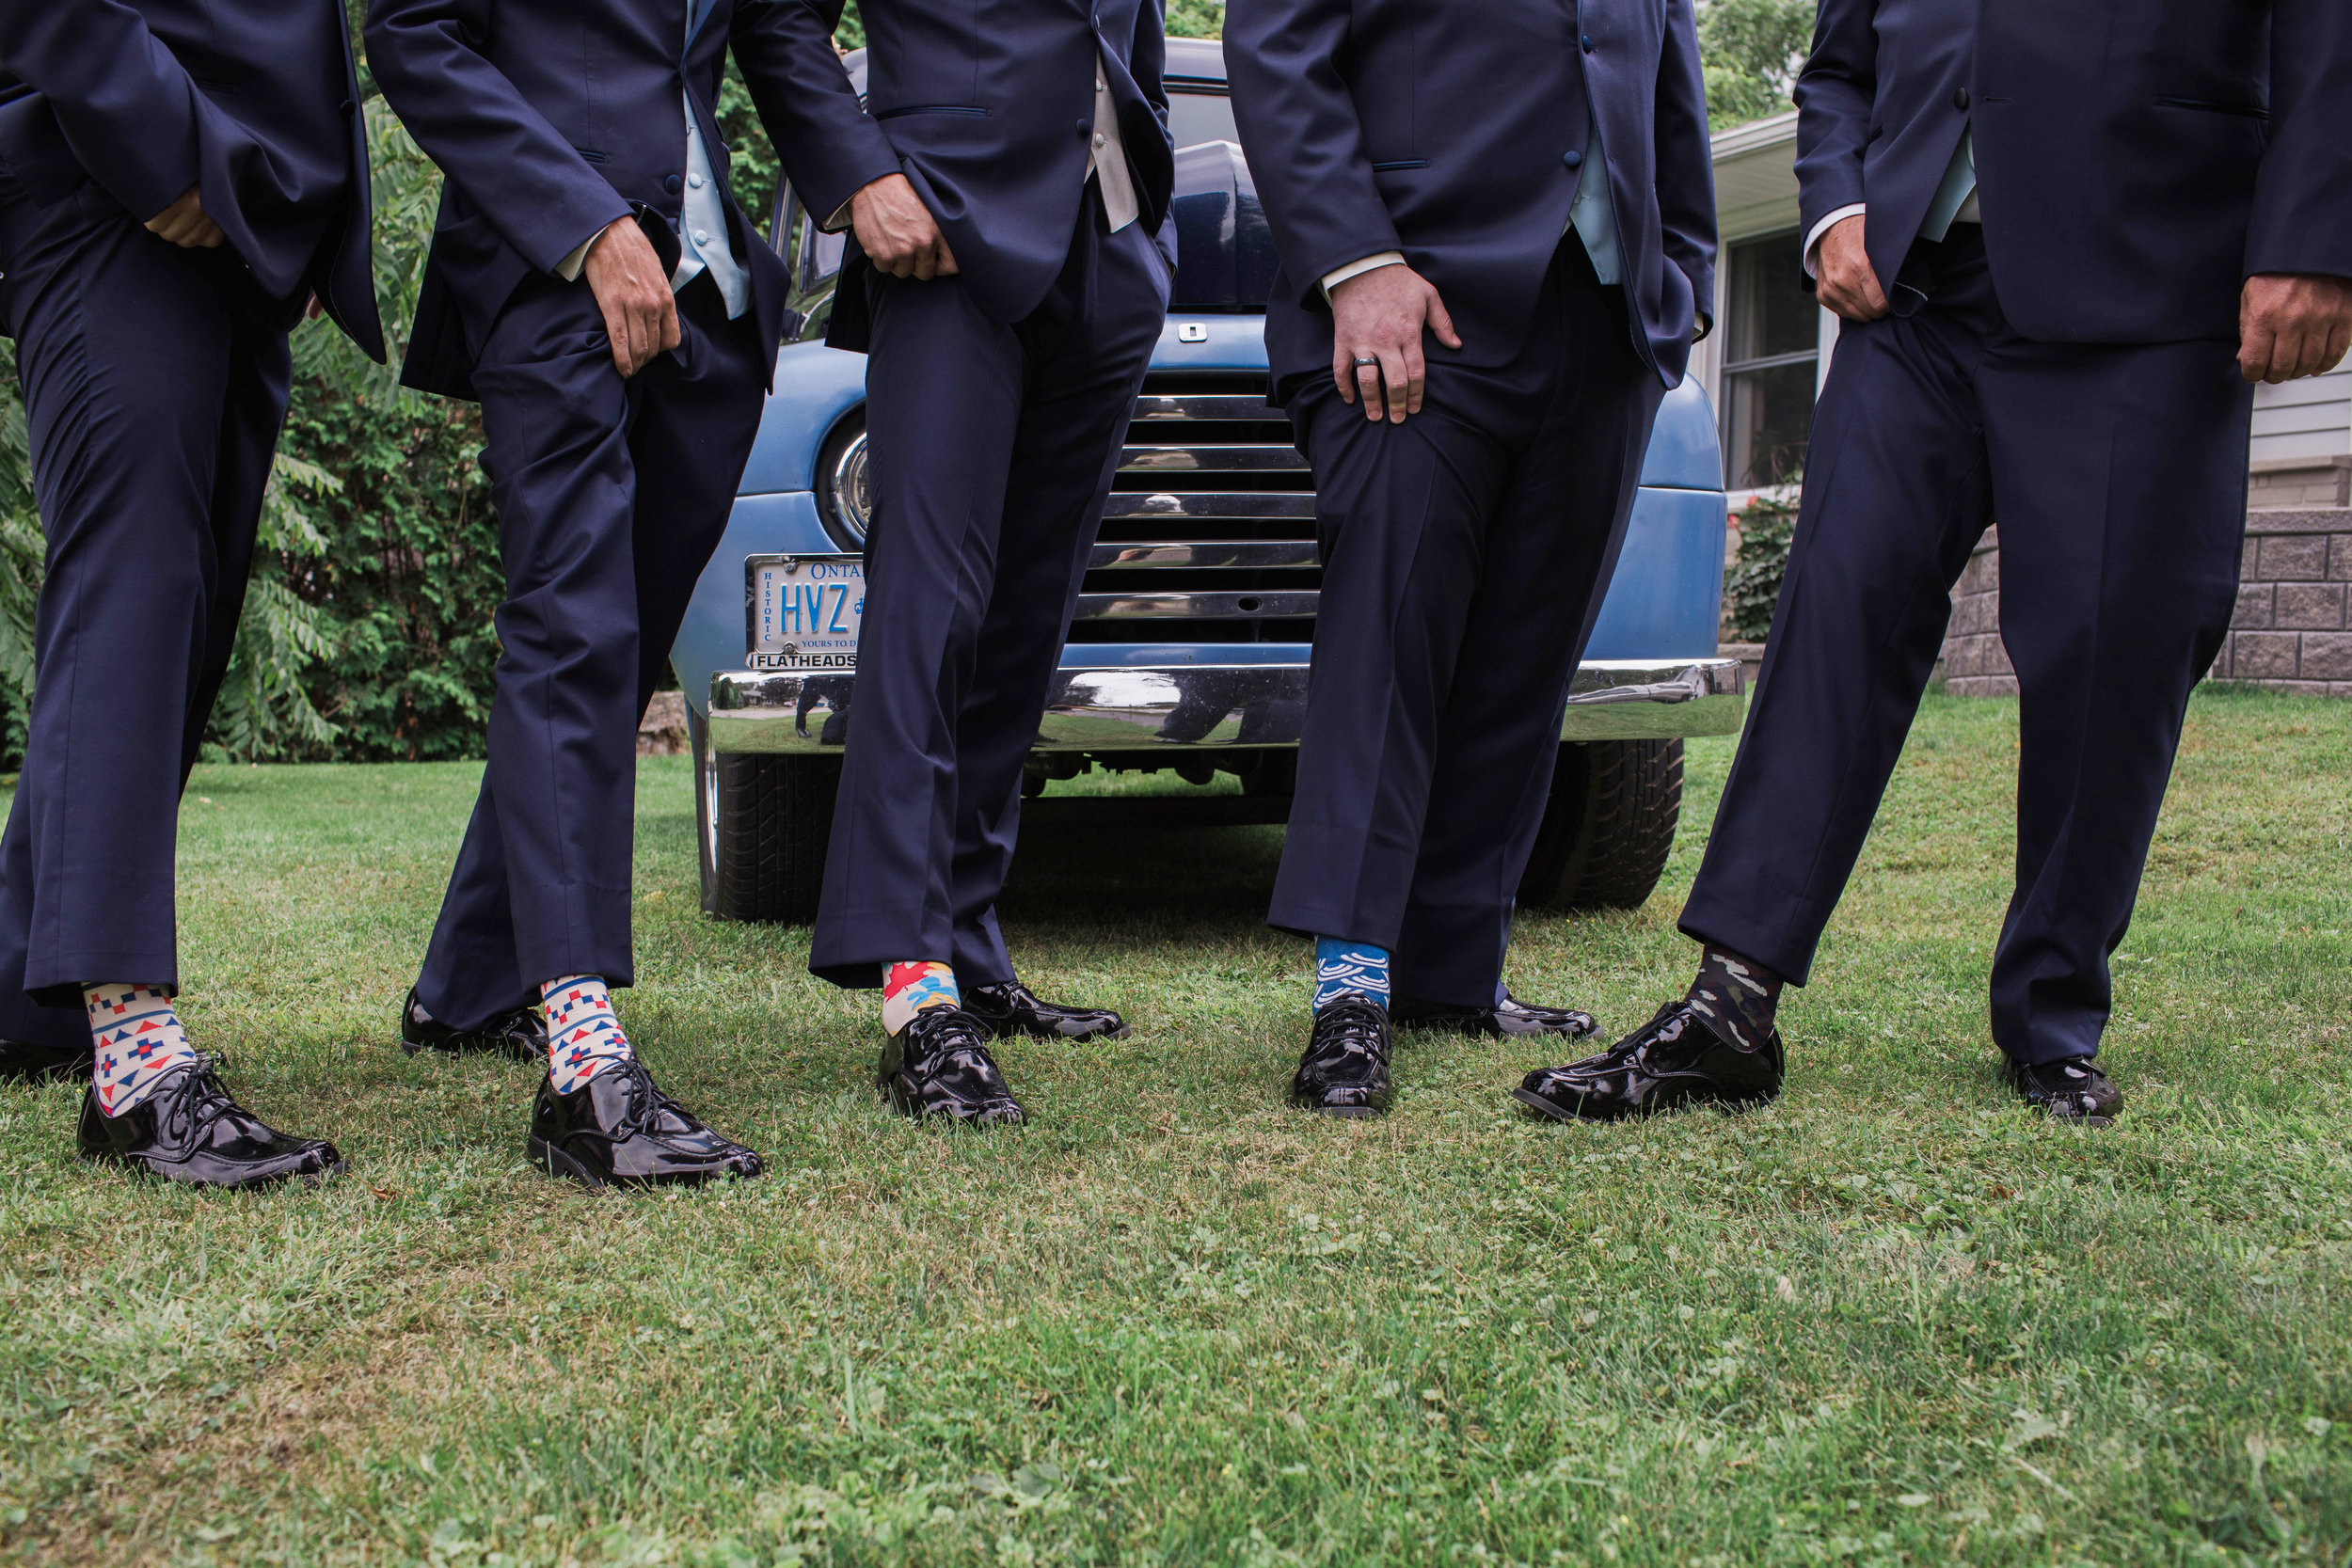 Morgan Bress Photography | Lindsay Wedding Photographer | Kawartha Lakes Wedding Photographer | Ontario Wedding Photographer |  Apple Orchard Wedding, Old truck, blue truck, wedding trucks, mens socks